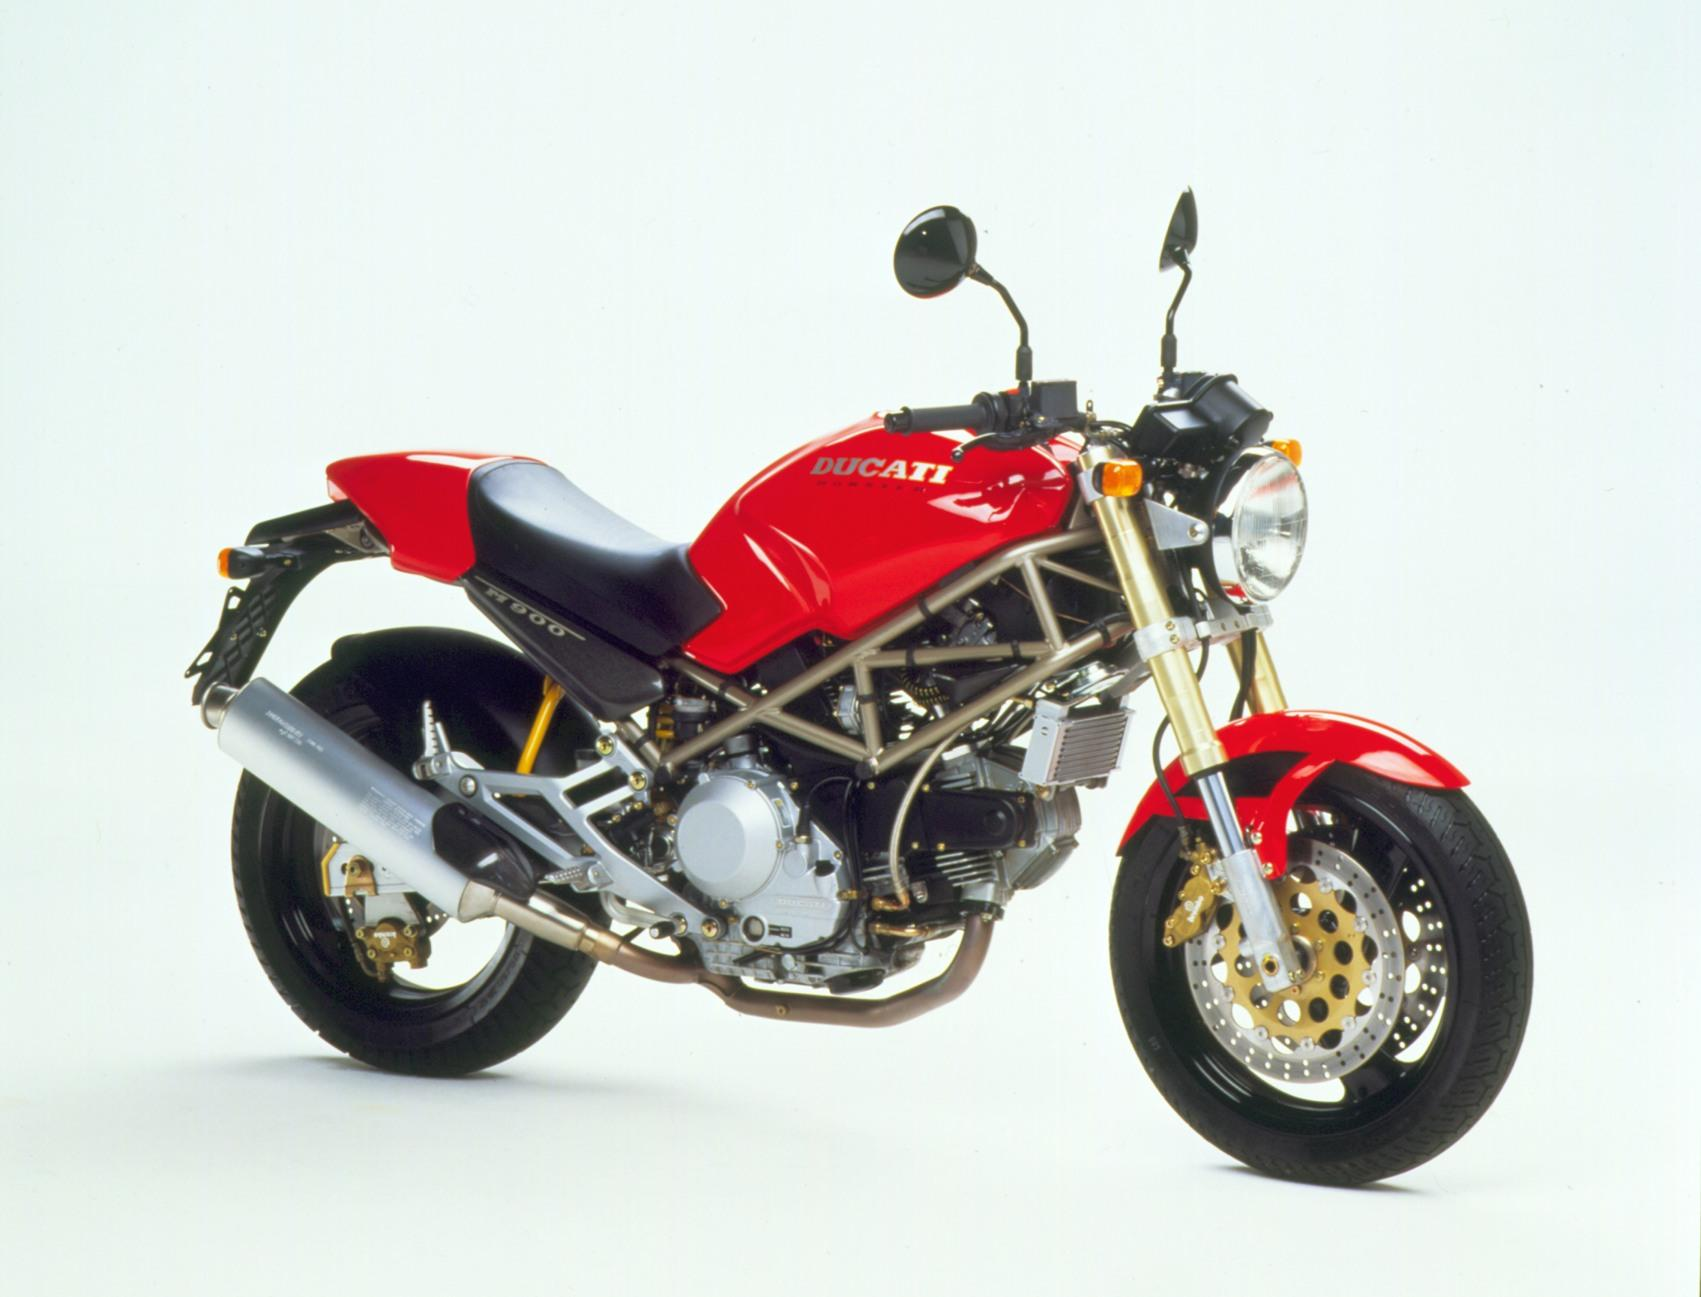 ducati monster geschichte motorrad fotos motorrad bilder. Black Bedroom Furniture Sets. Home Design Ideas